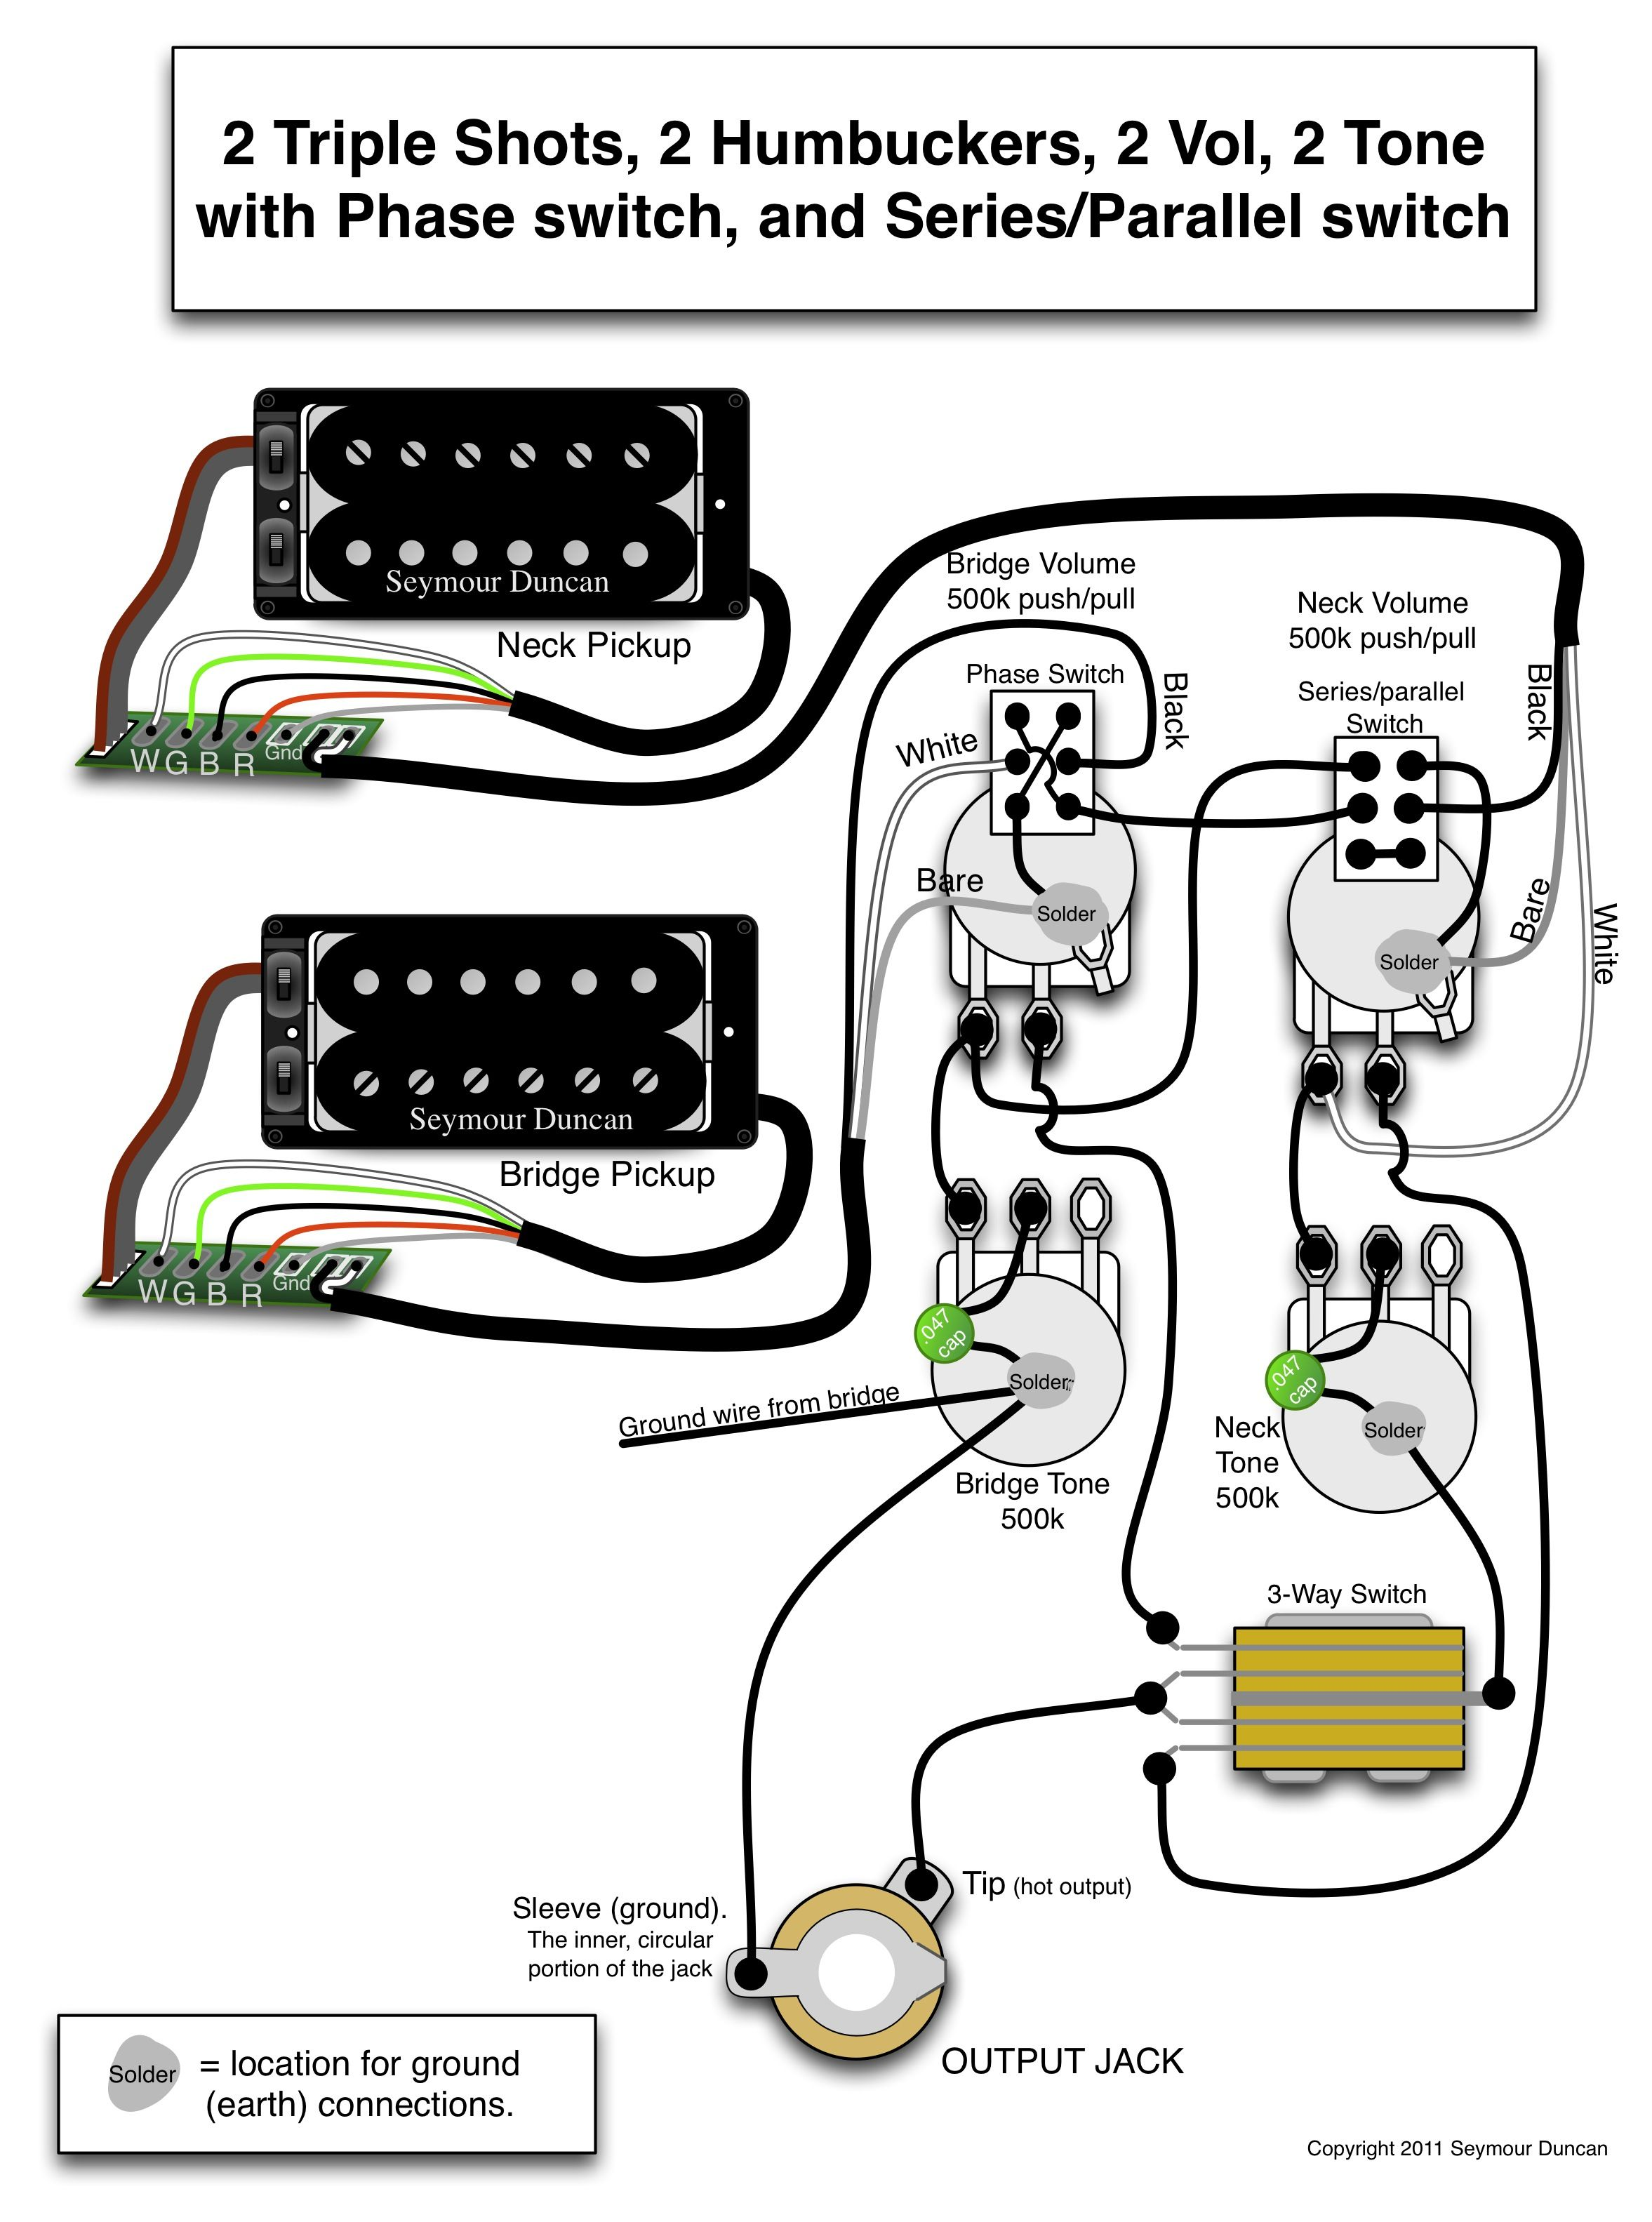 hight resolution of seymour duncan wiring diagram 2 triple shots 2 humbuckers 2 vol 2 tone one with phase switch and the other with series parallel switch